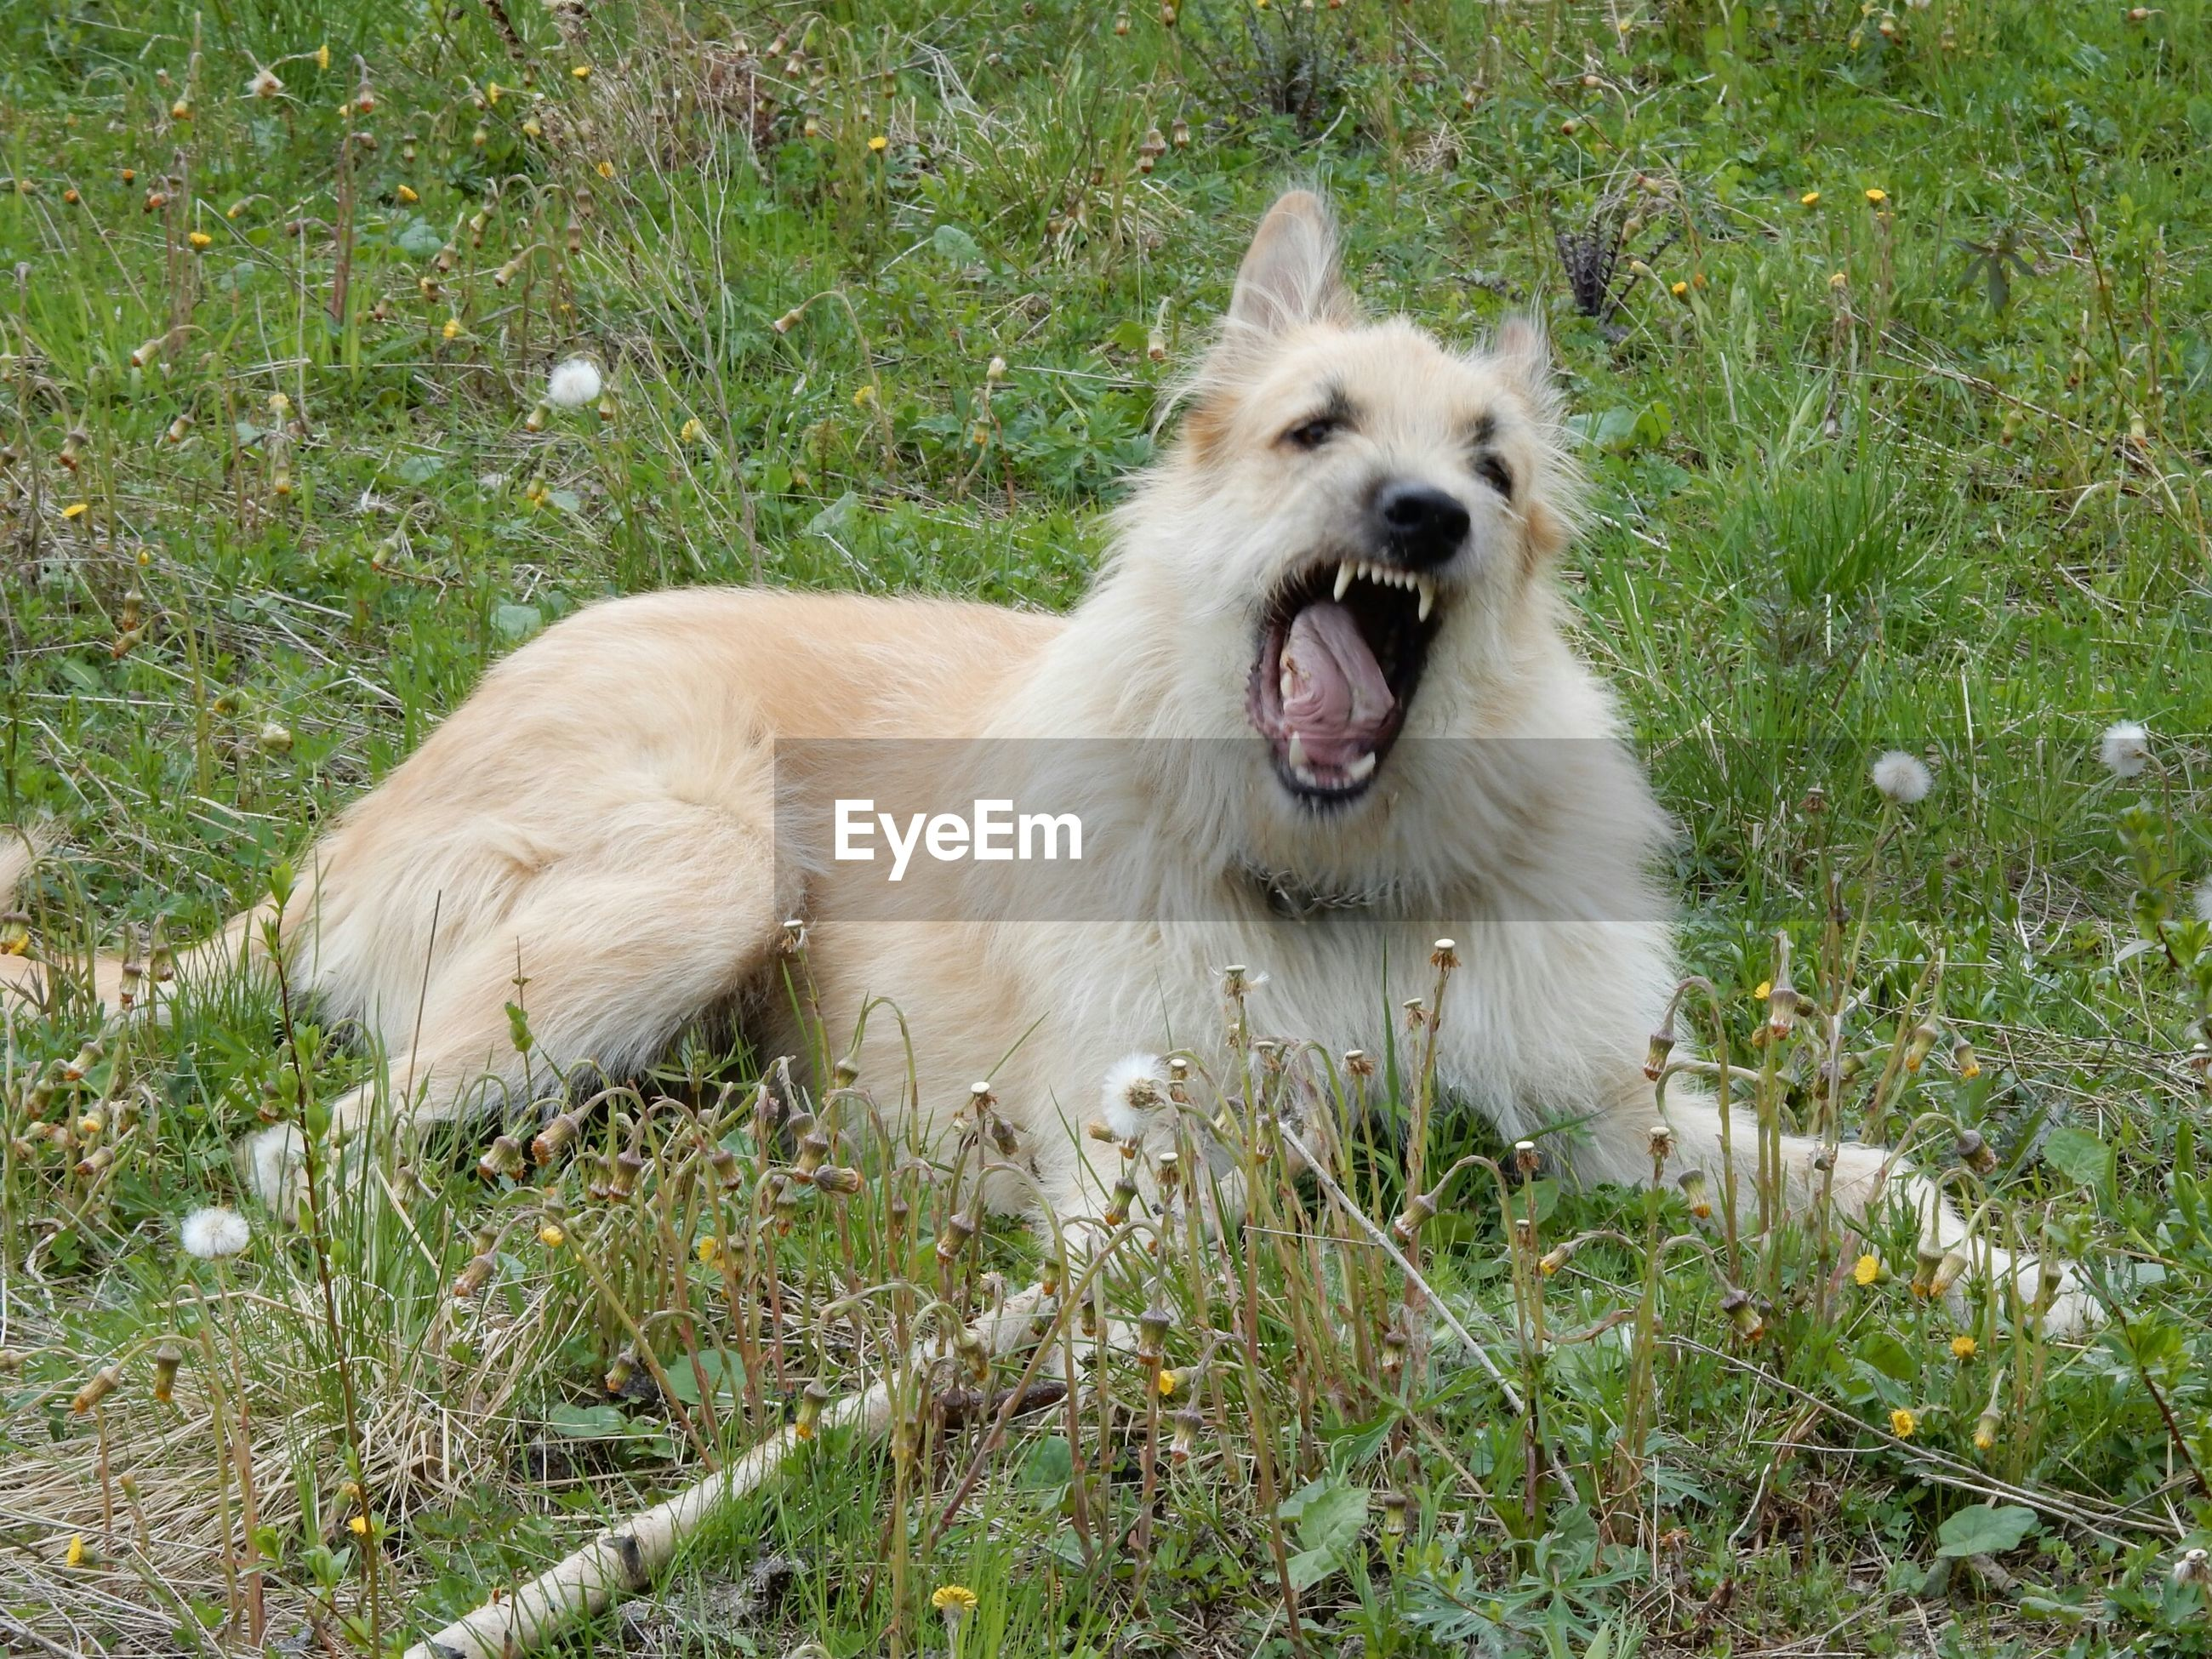 Angry dog sitting on grassy field